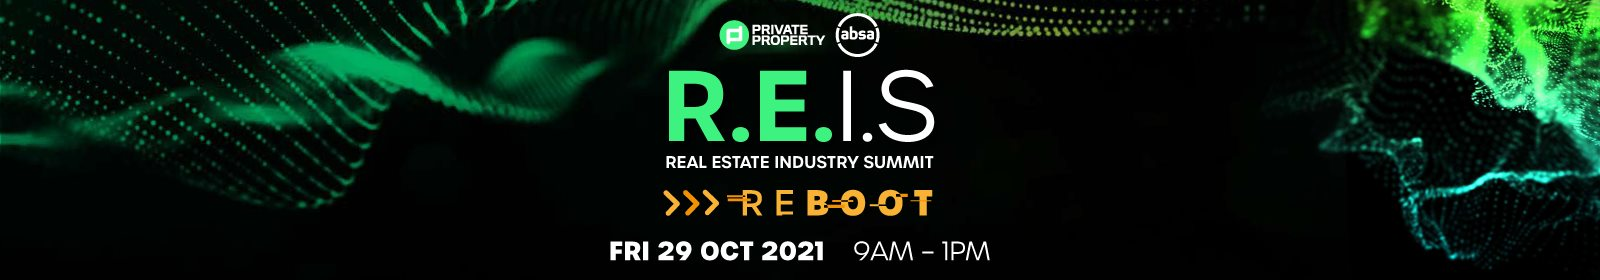 PRIVATE PROPERTY REAL ESTATE INDUSTRY SUMMIT 2021  OFFICALLY LAUNCHED